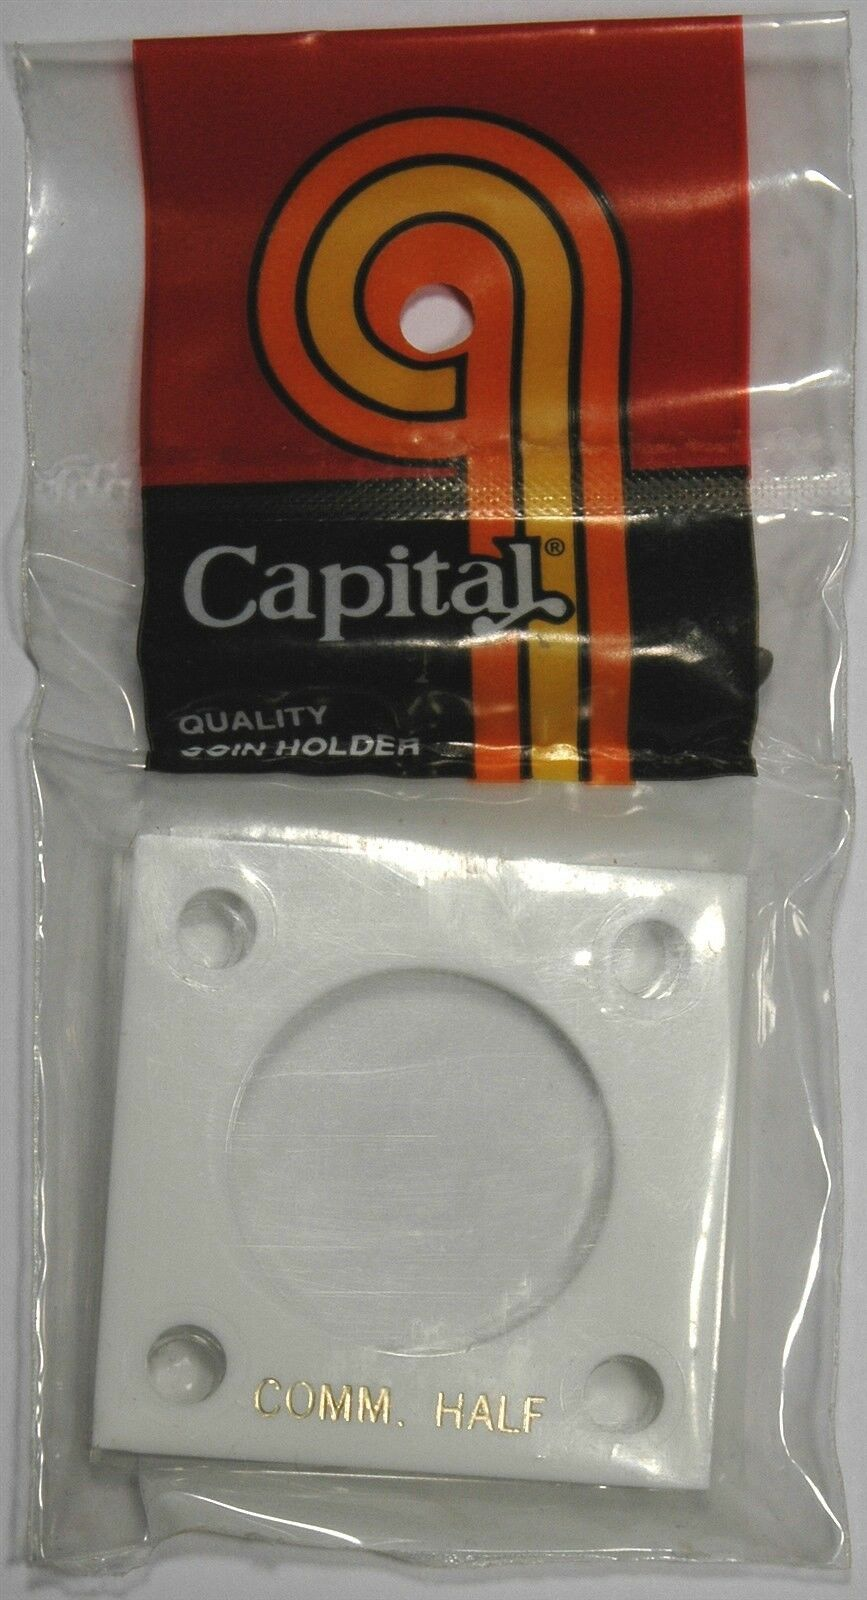 2x2 Capital Holder Plastic Snaplock For Half Dollar $ Coin Black Capsule Display